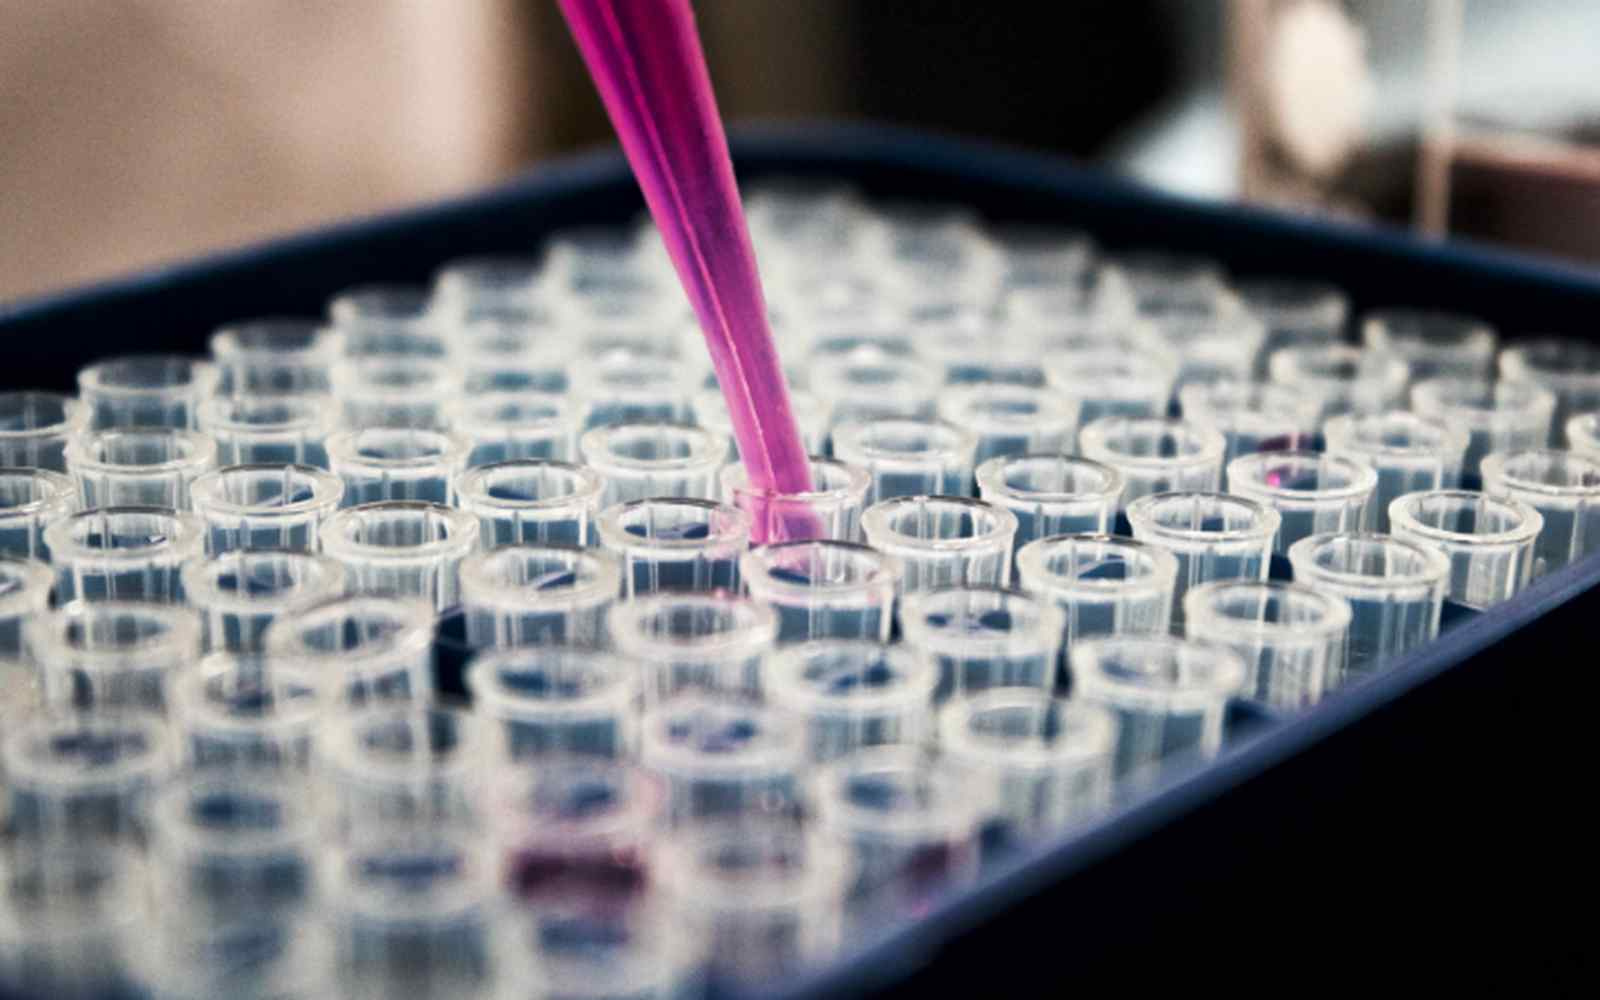 Laboratory test tubes being filled by pipette